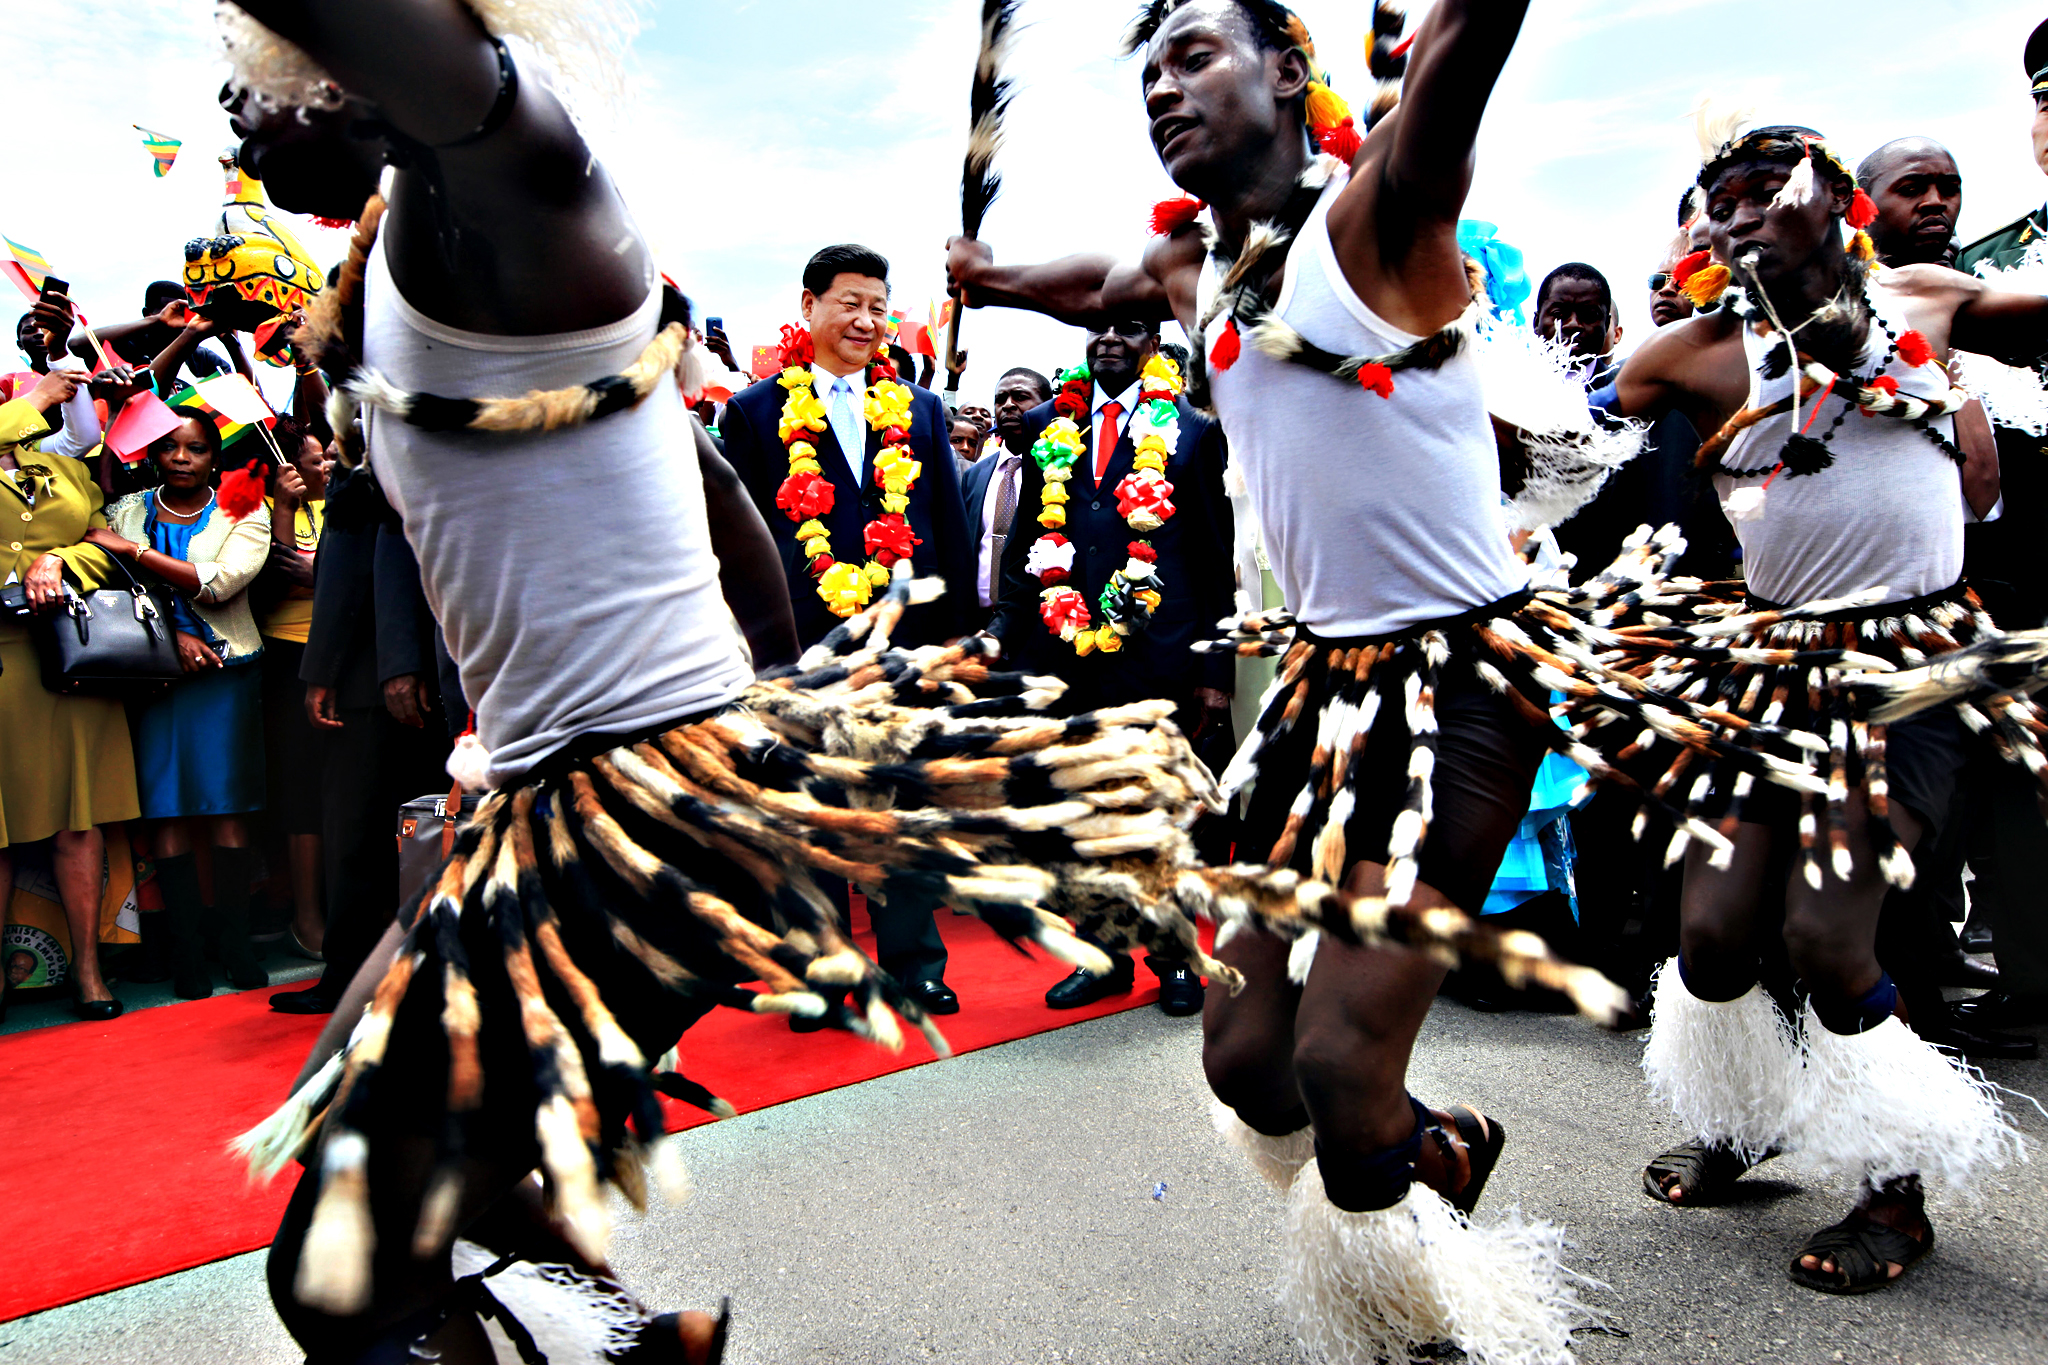 Chinese President Xi Jinping, centre, and Zimbabwean President Robert Mugabe, centre right,  watch a performance by Zimbabwean traditional dancers upon his arrival in Harare, Zimbabwe, Tuesday, Dec. 1. 2015. Jinping is in Zimbabwe for a two day State visit during which he is set to sign some bilateral agreements aimed at strengthening relationships between the two countries